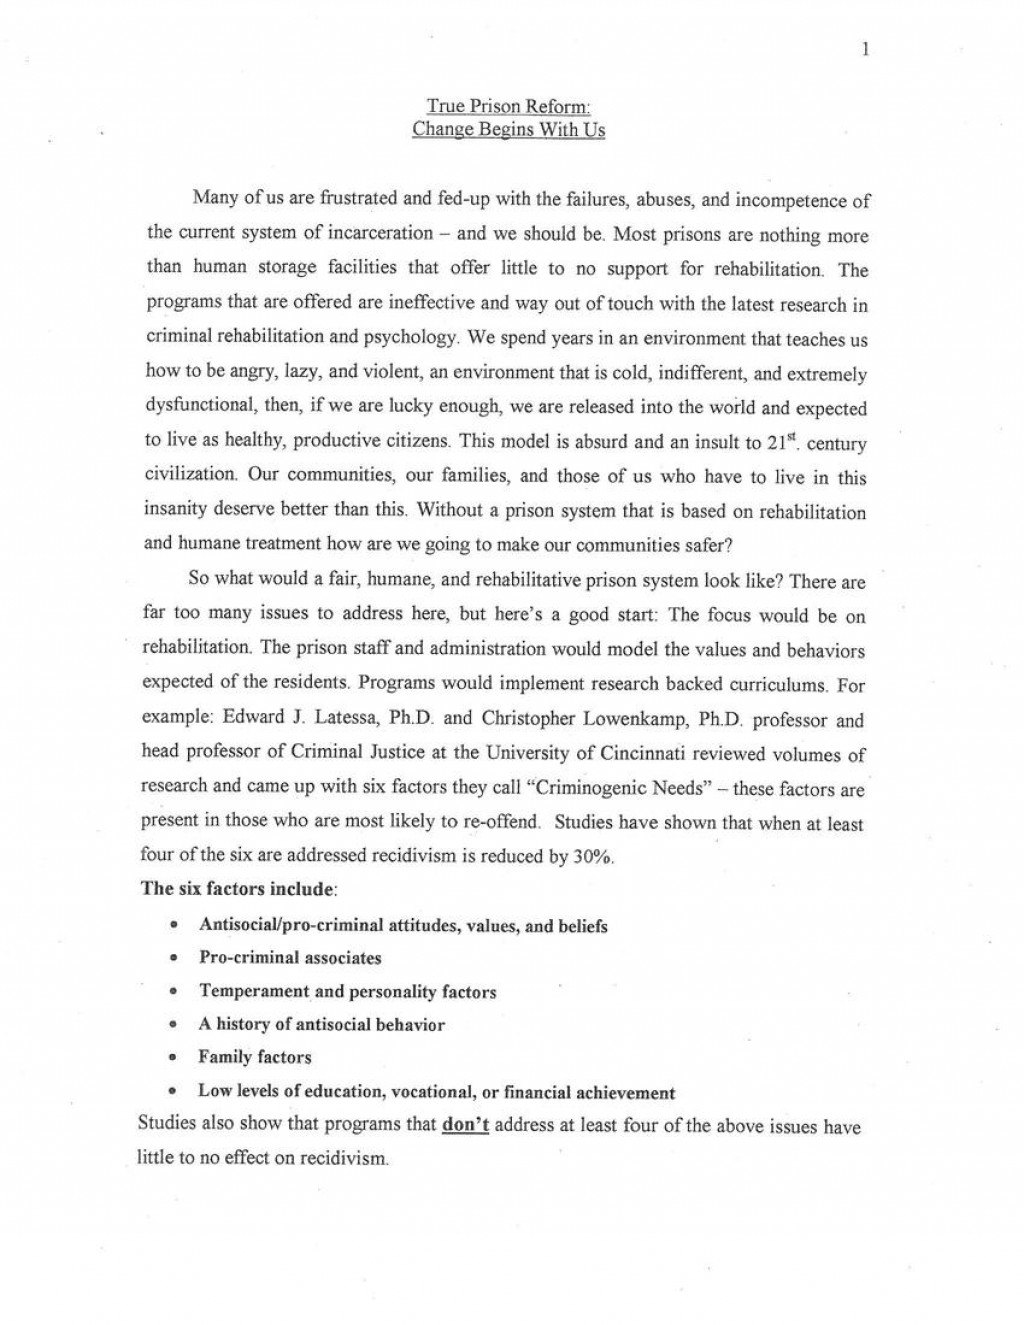 004 Profile Essay Topics Doc6217 Page Outstanding Personal College Questions Large